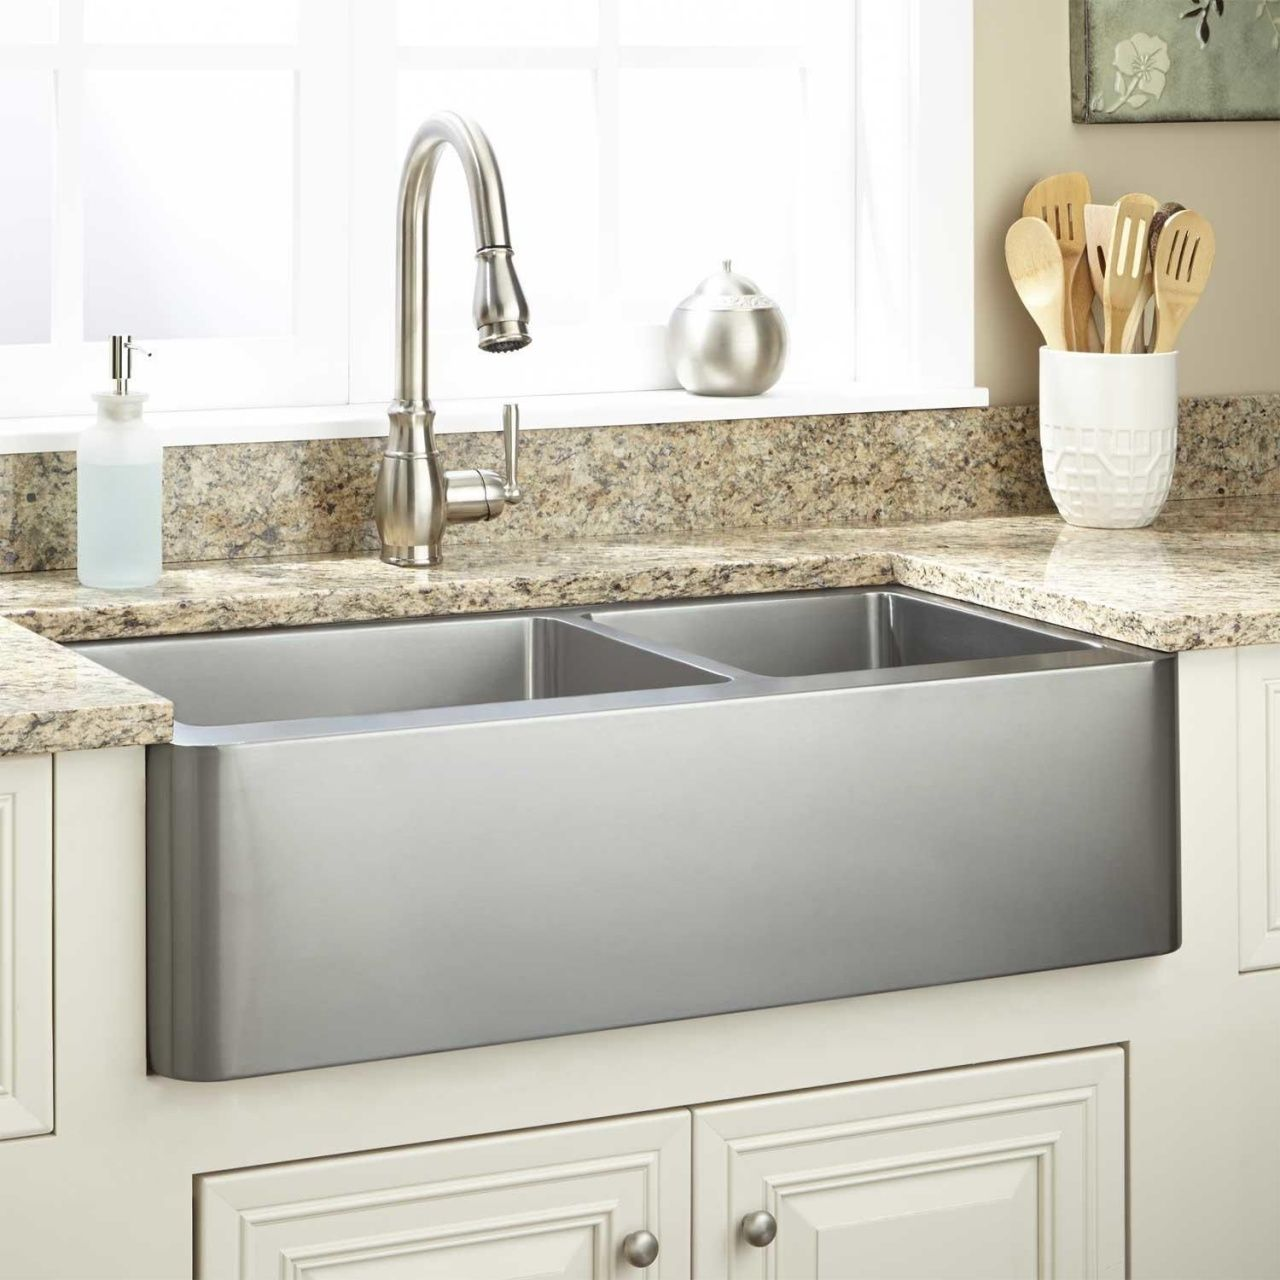 33 Inch White Farmhouse Sink White Farmhouse Sink White